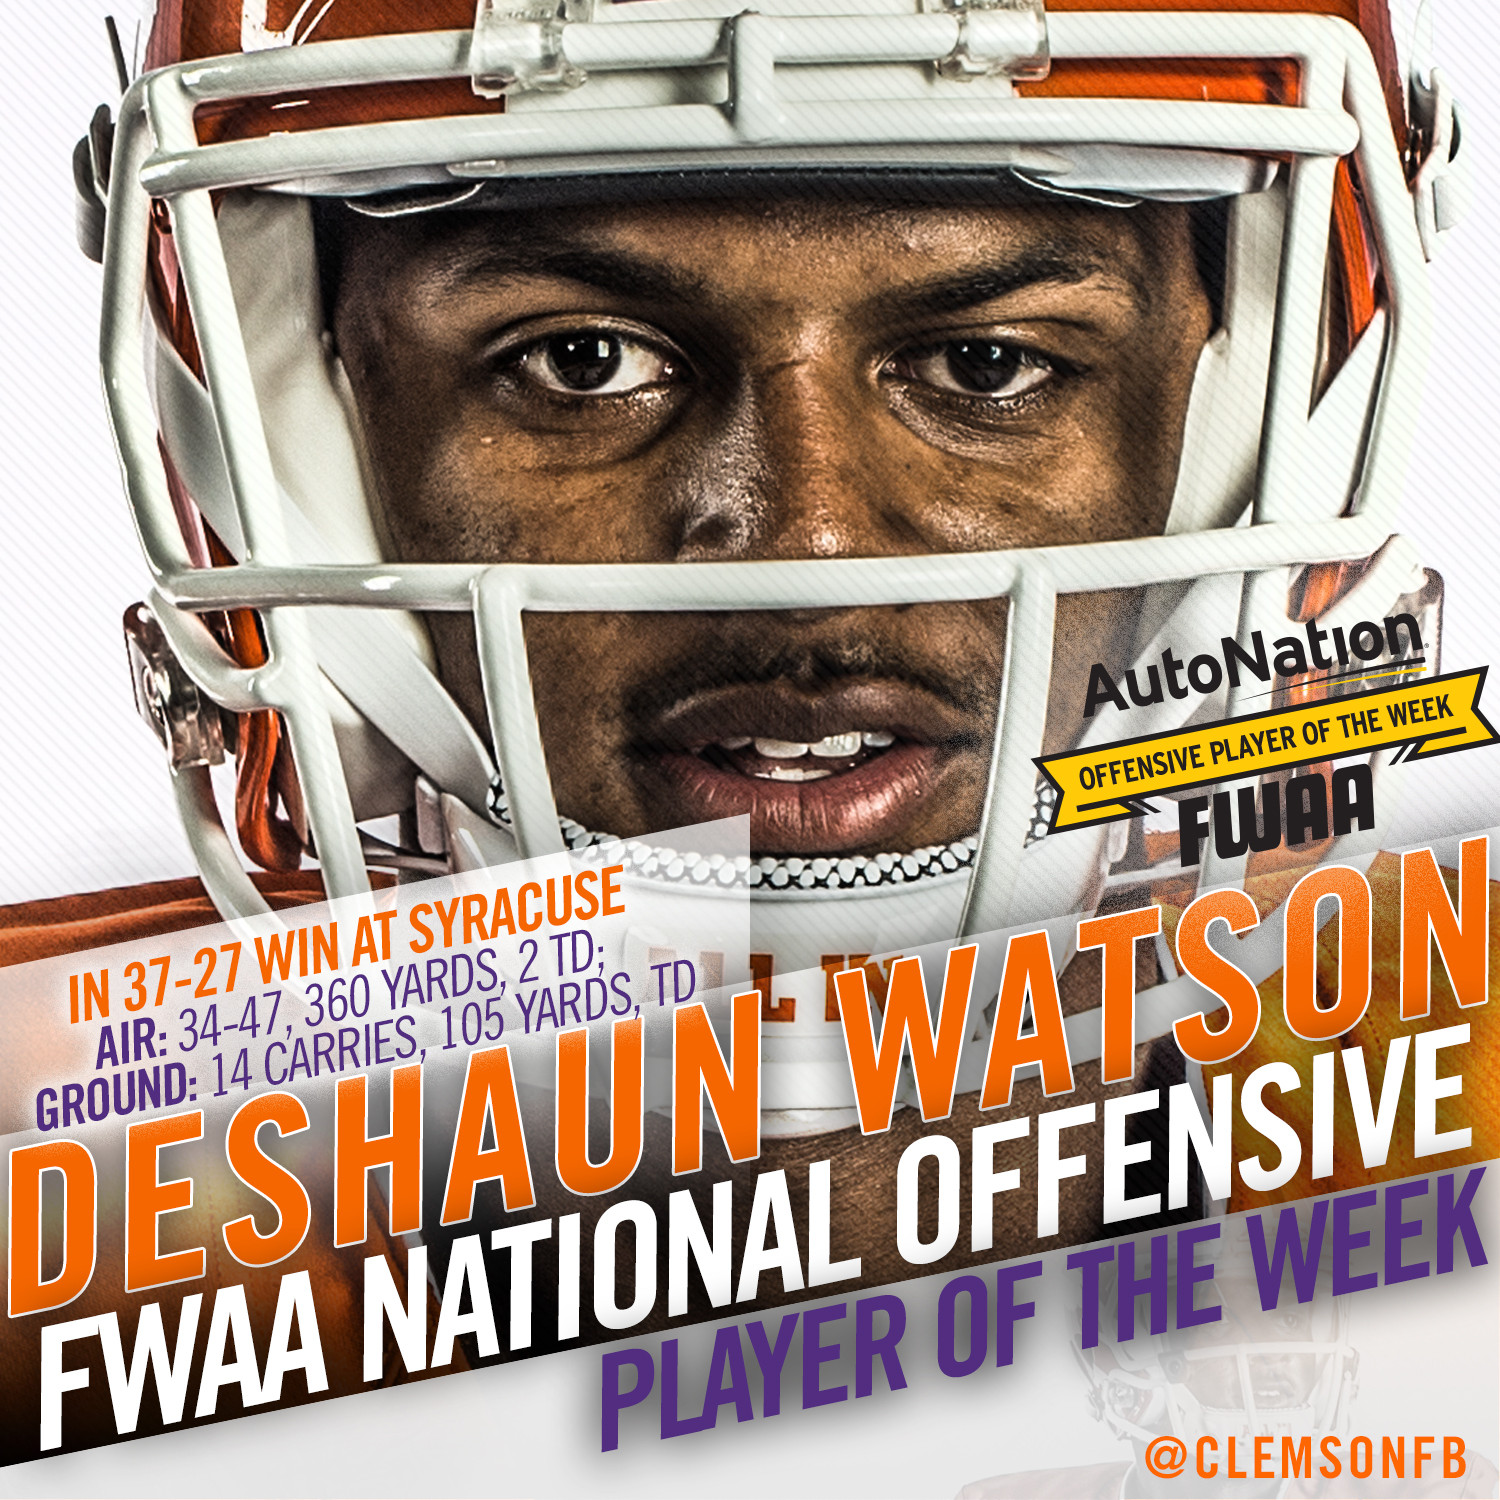 Watson Named AutoNation Offensive Player of the Week by Football Writers Association